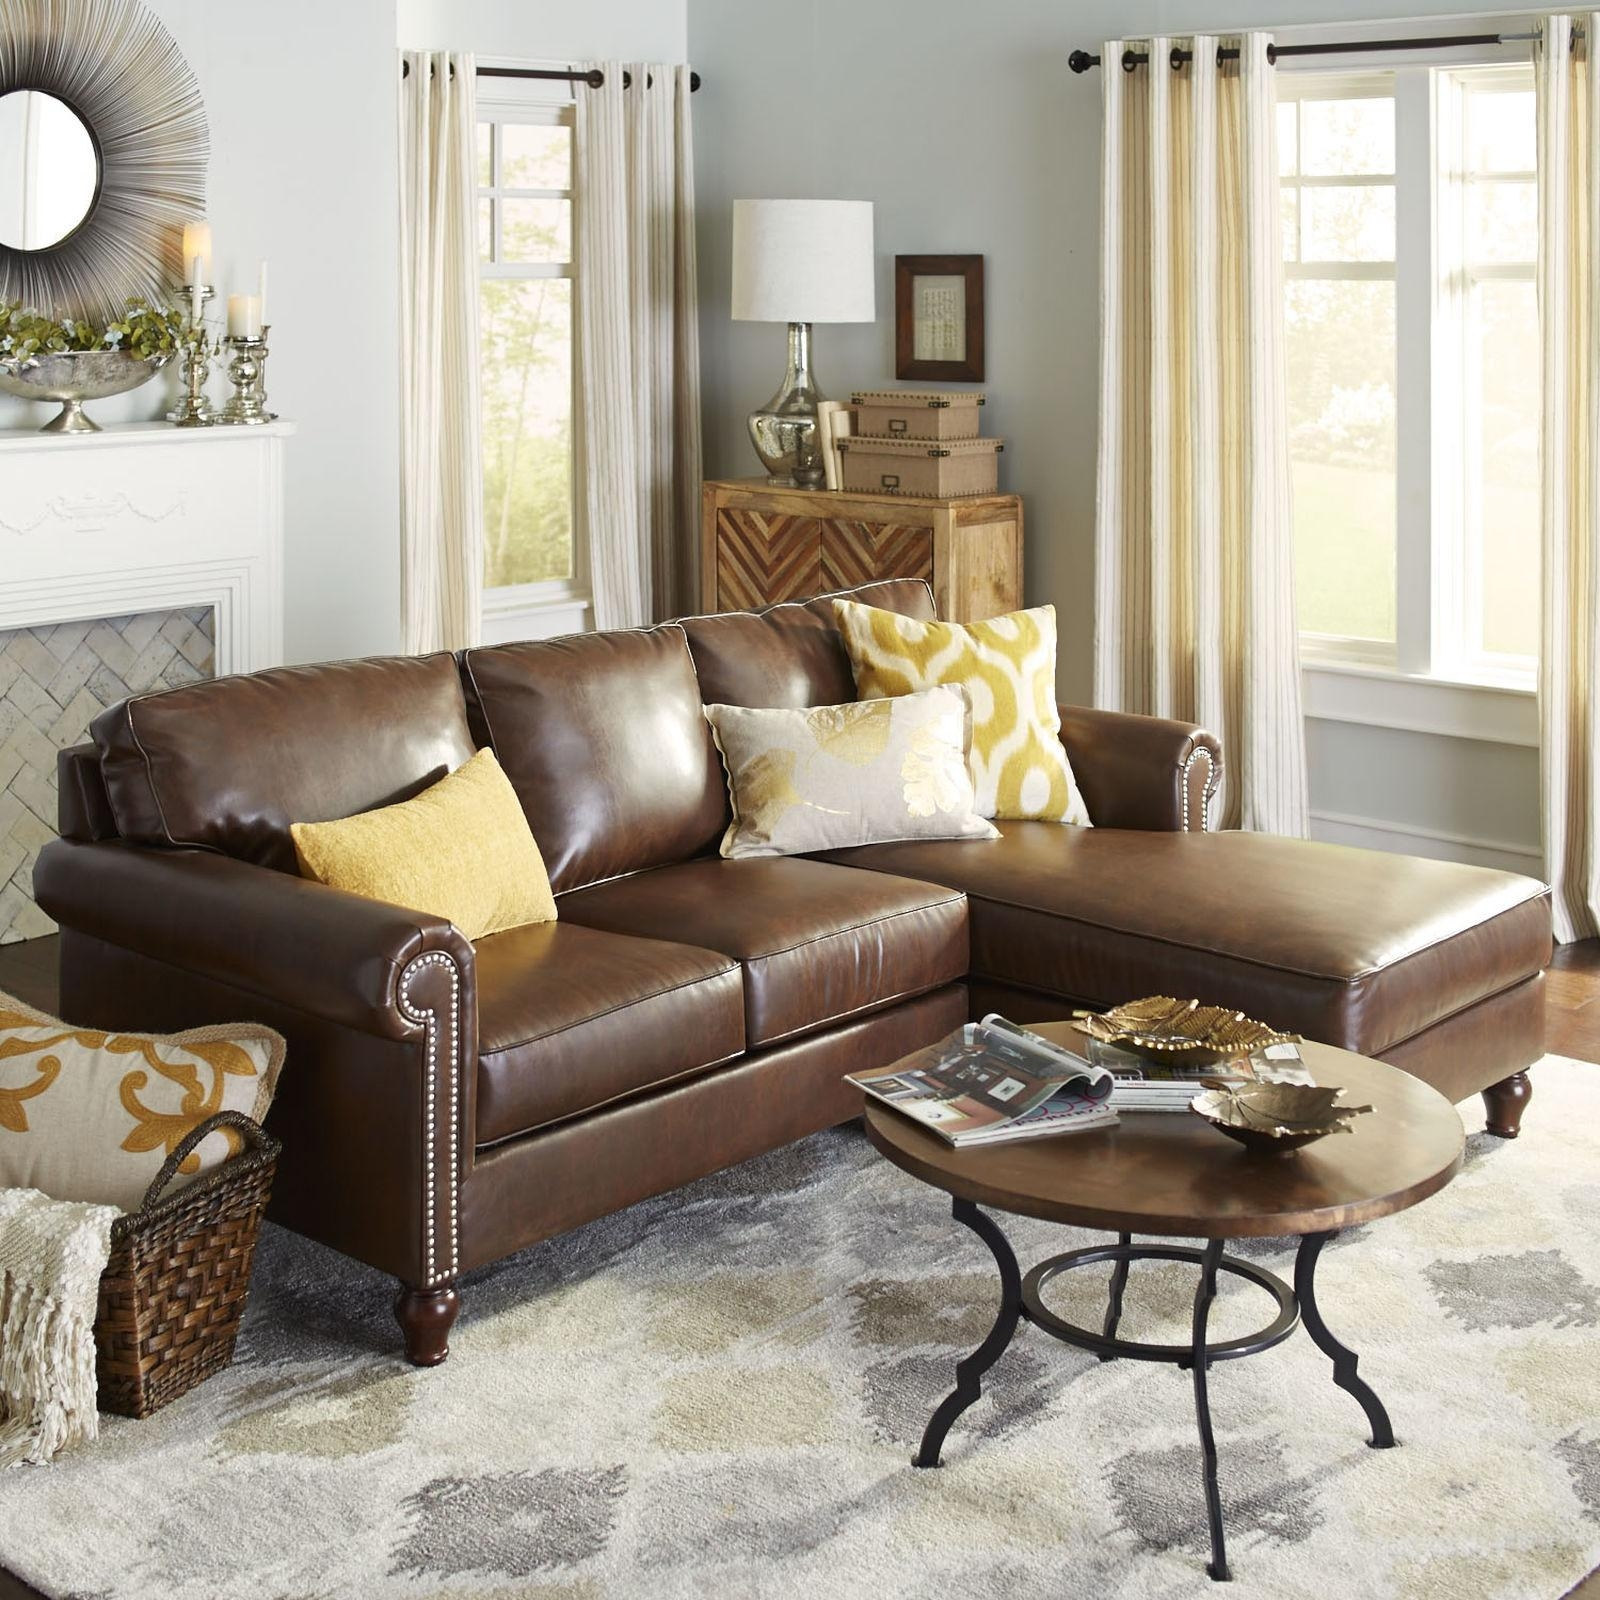 One Furniture: 2019 Latest Pier 1 Sofas